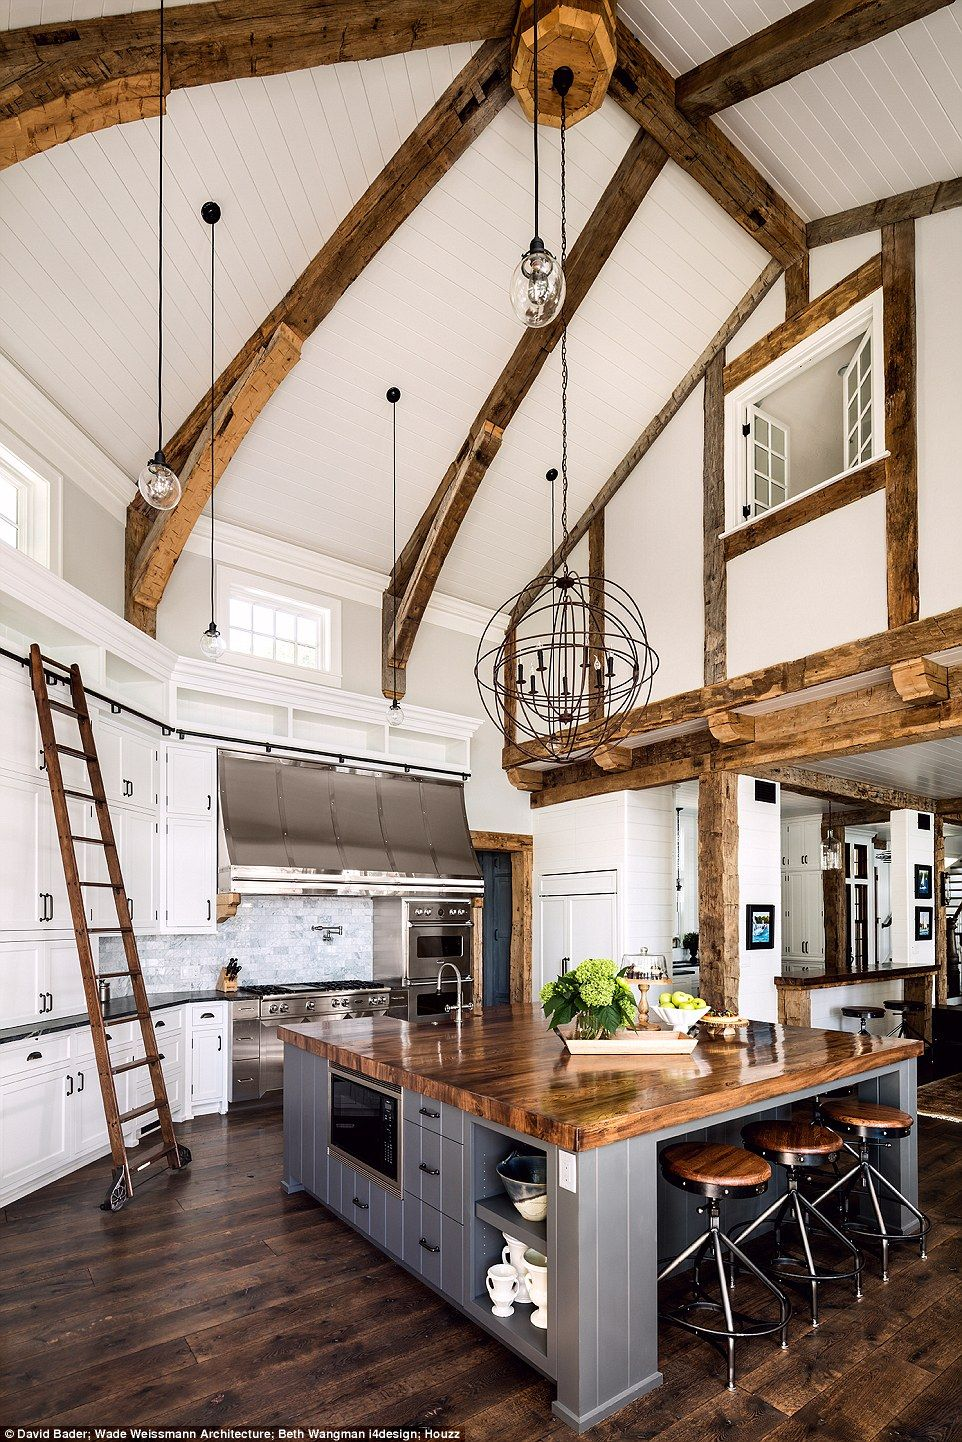 Charmant Stunning: This American Property Was Singled Out For Its Large Kitchen  Island Work Space And Quirky Ladders Used To Reach Extra Storage.